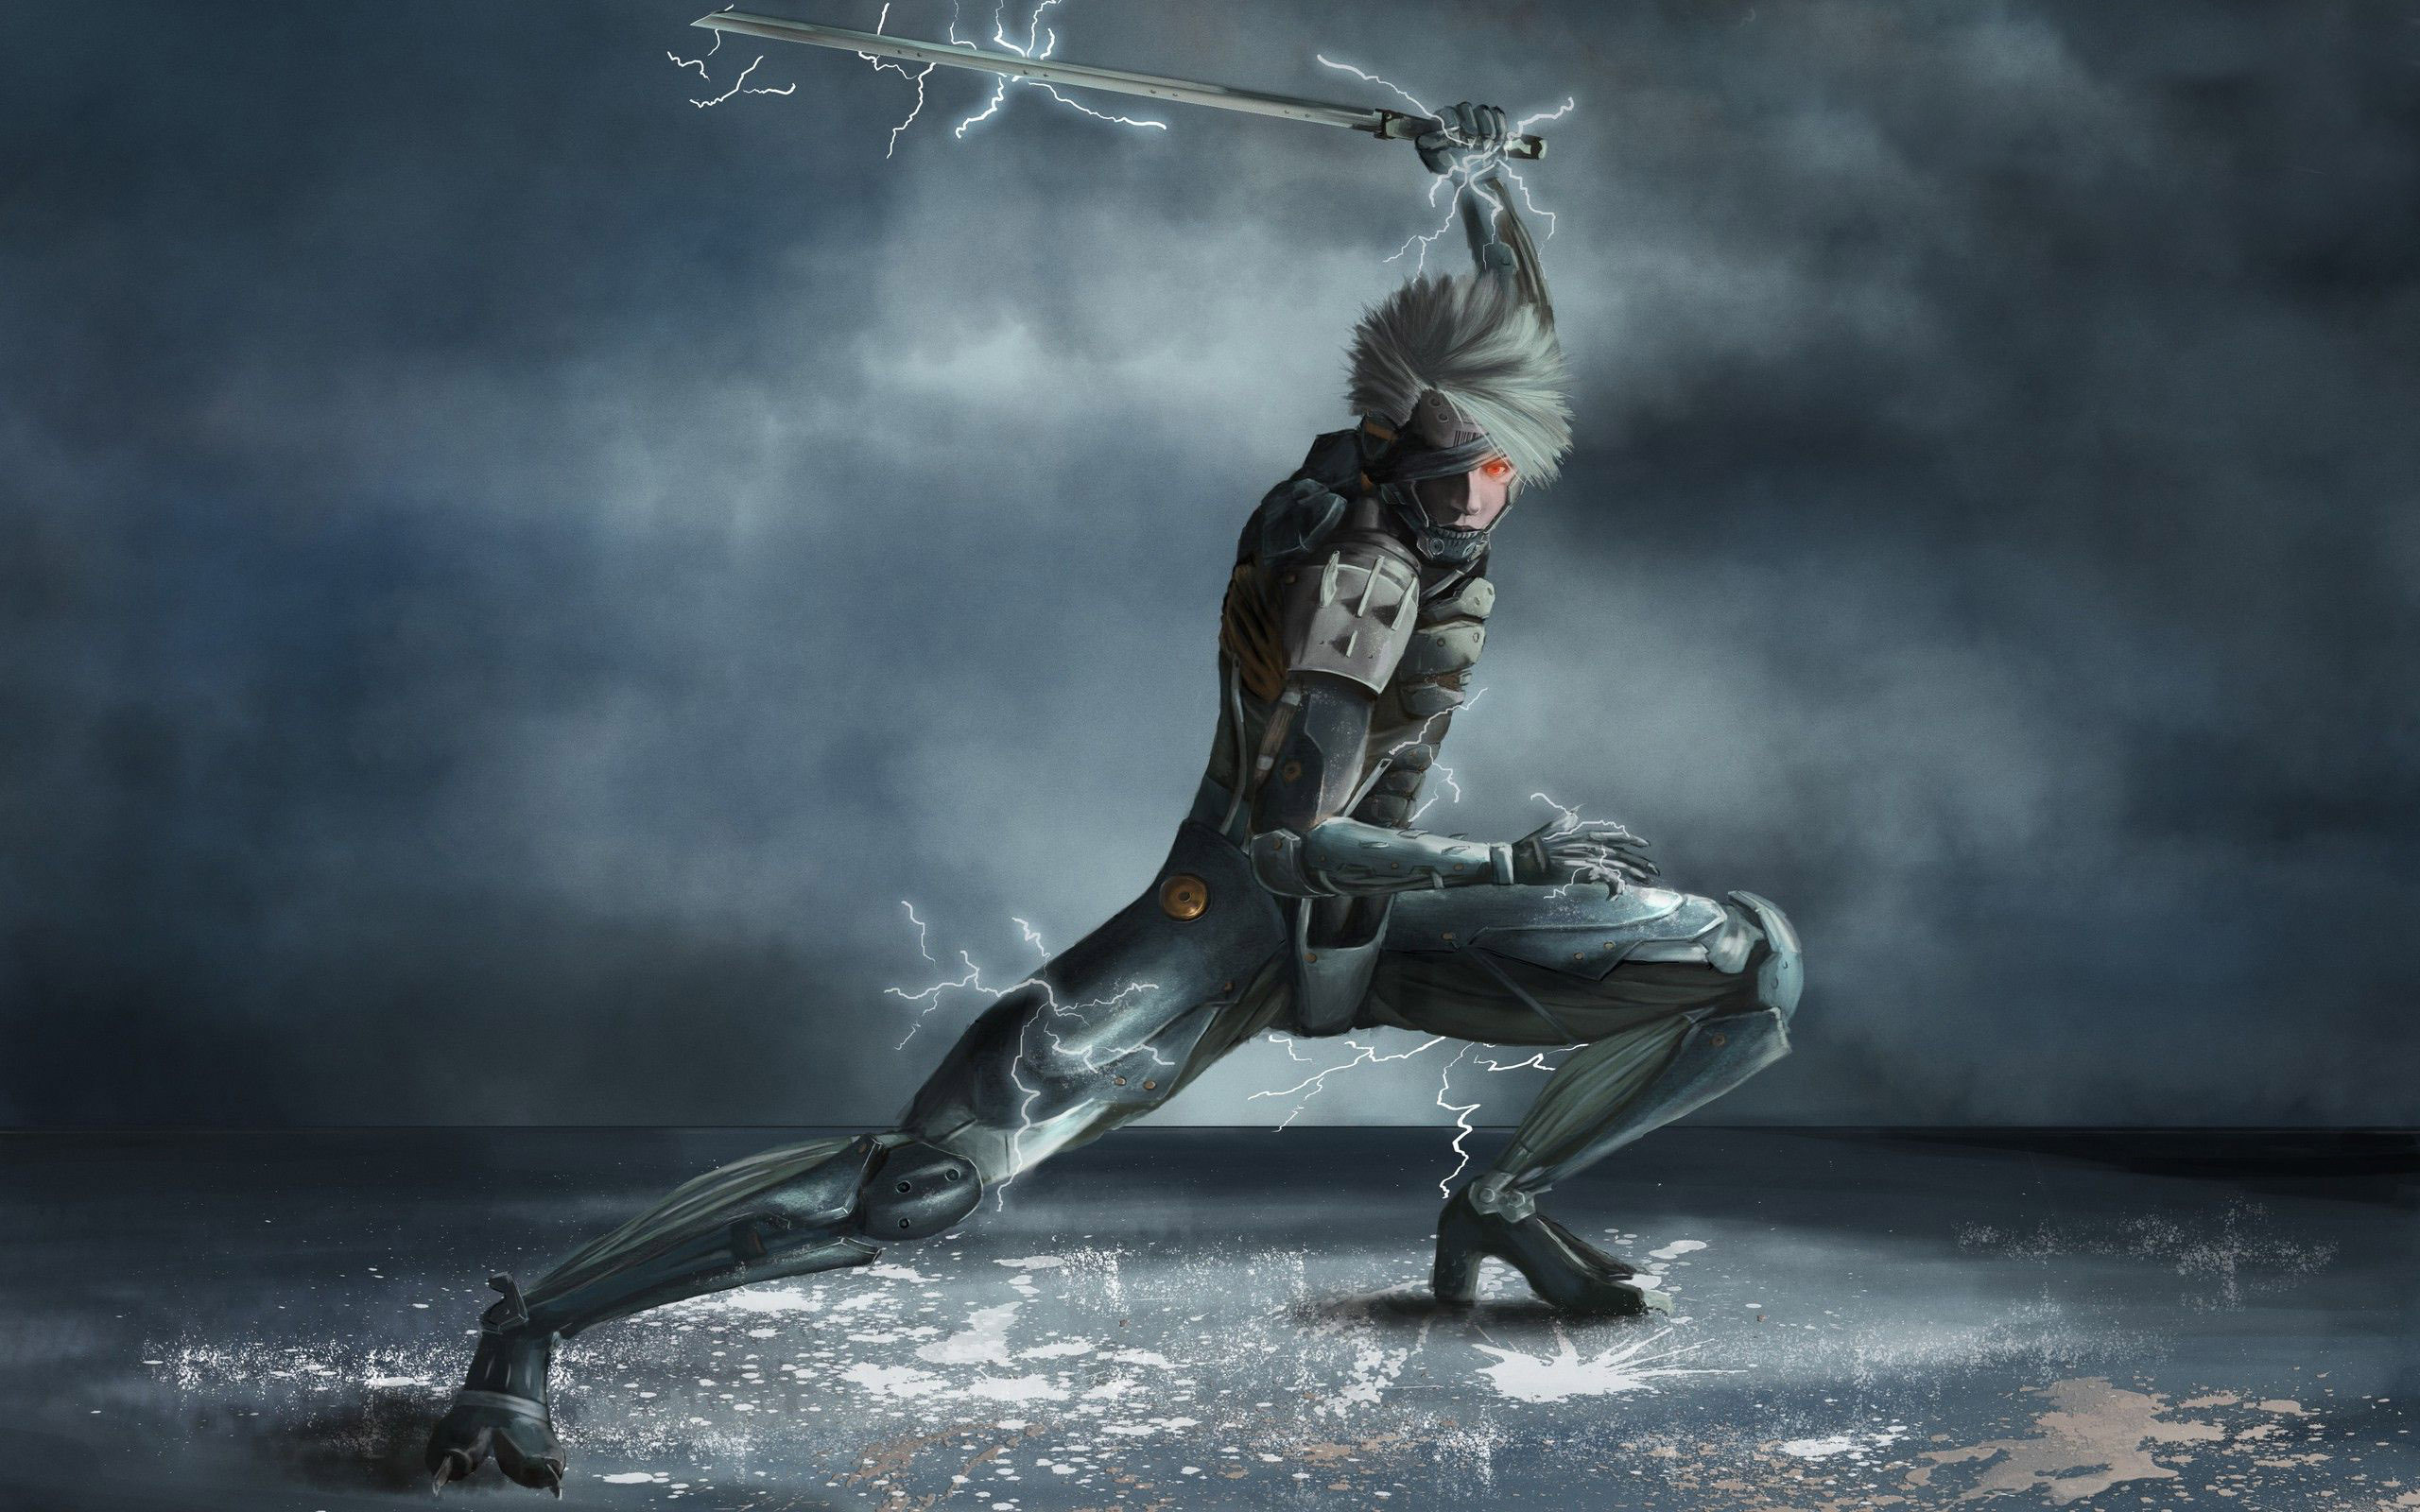 2560x1600px raiden metal gear wallpaper wallpapersafari metal gear solid raiden wallpaper 2997 3160 hd wallpapersjpg 2560x1600 voltagebd Choice Image